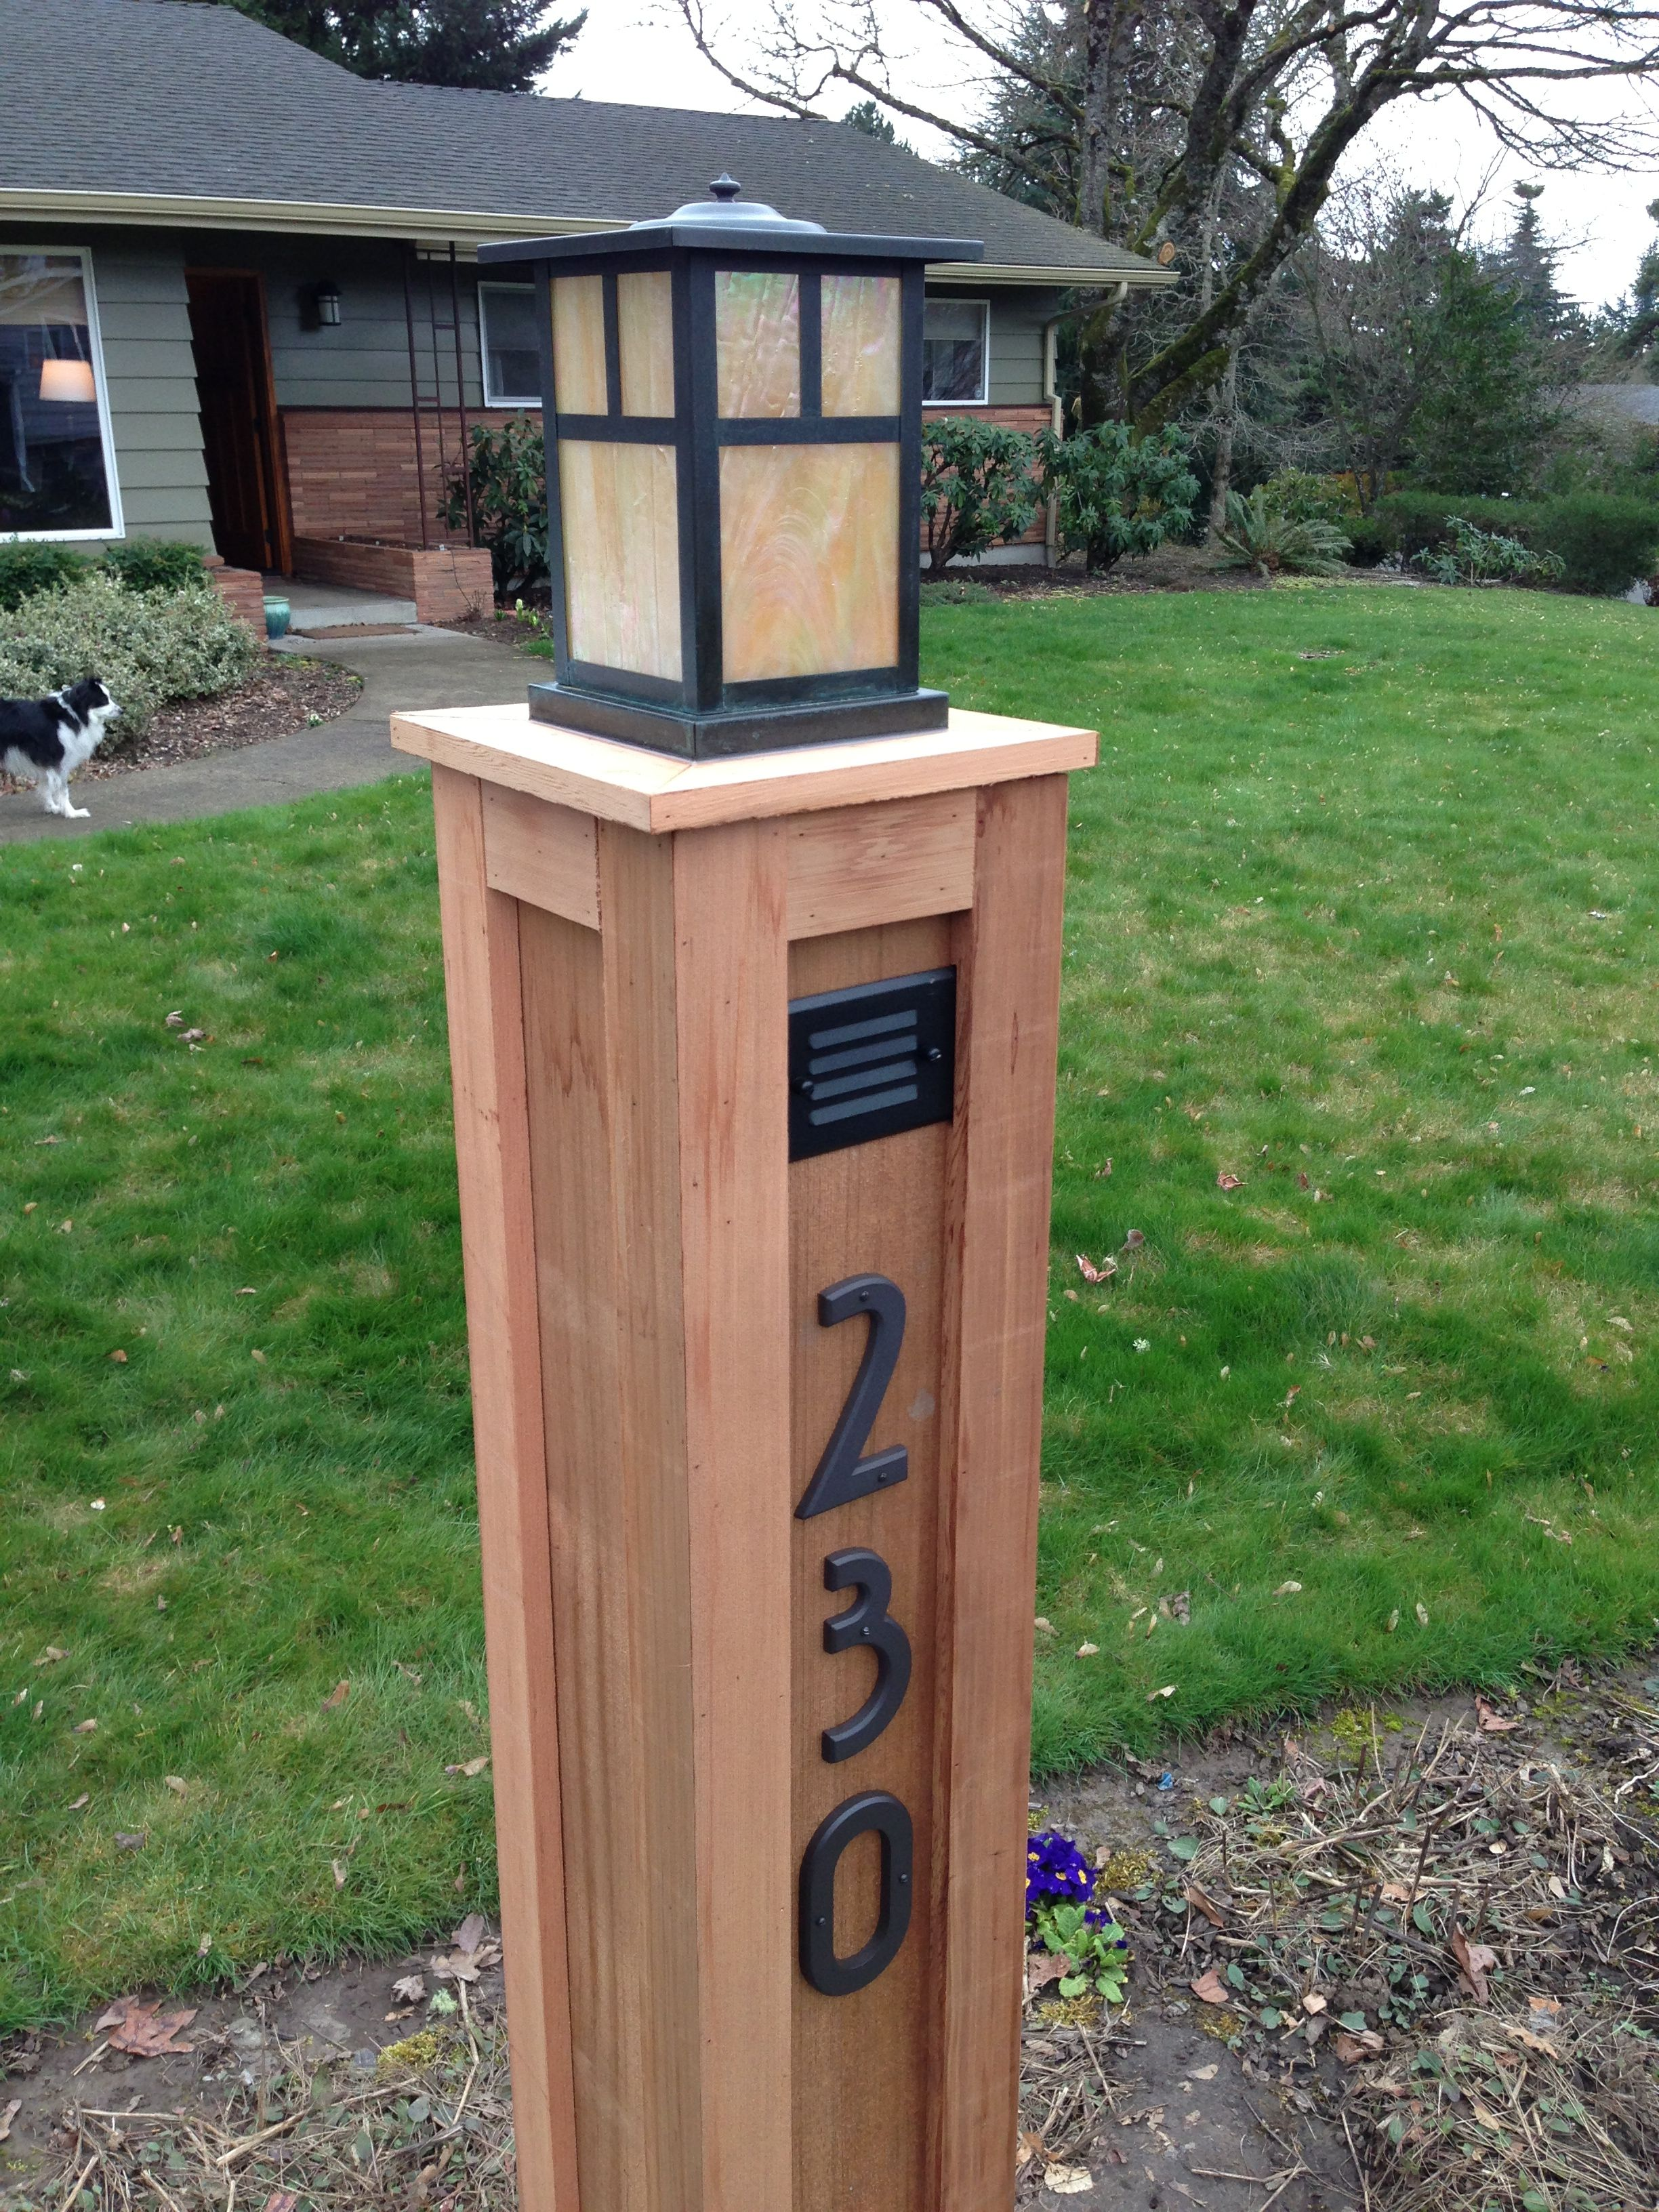 Wooden Light Post Designs Light Posts On Pinterest Stone Mailbox Lamp Post Ideas